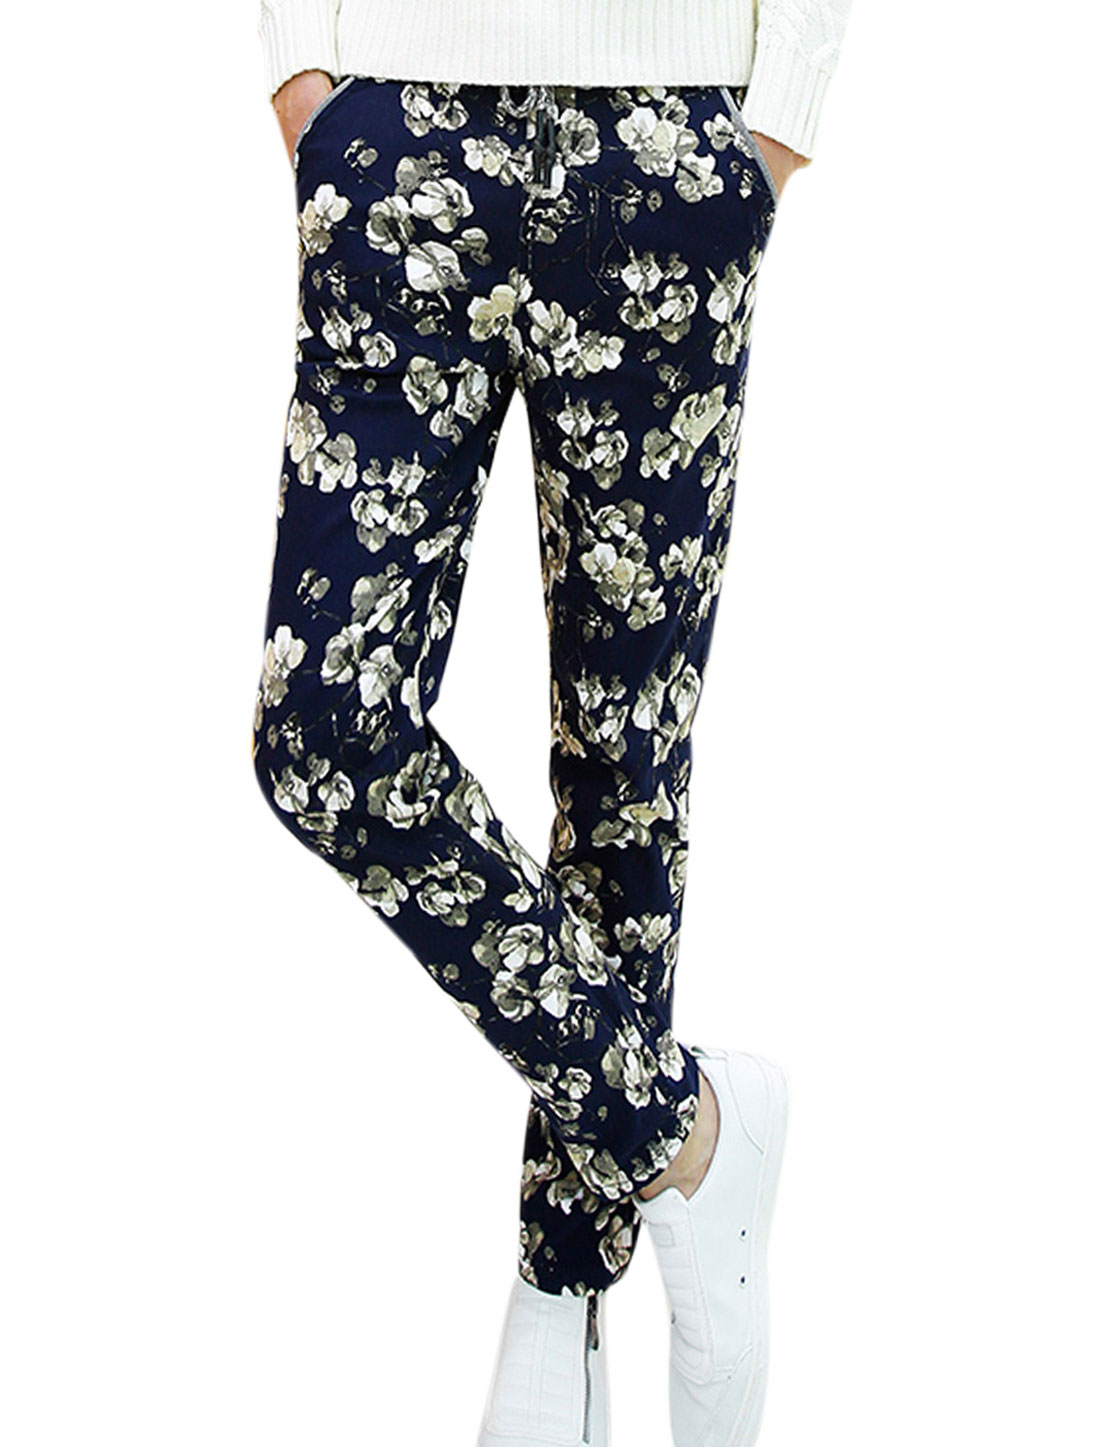 Men Patch Back Pockets All Over Flower Pattern Casual Pants Navy Blue W30